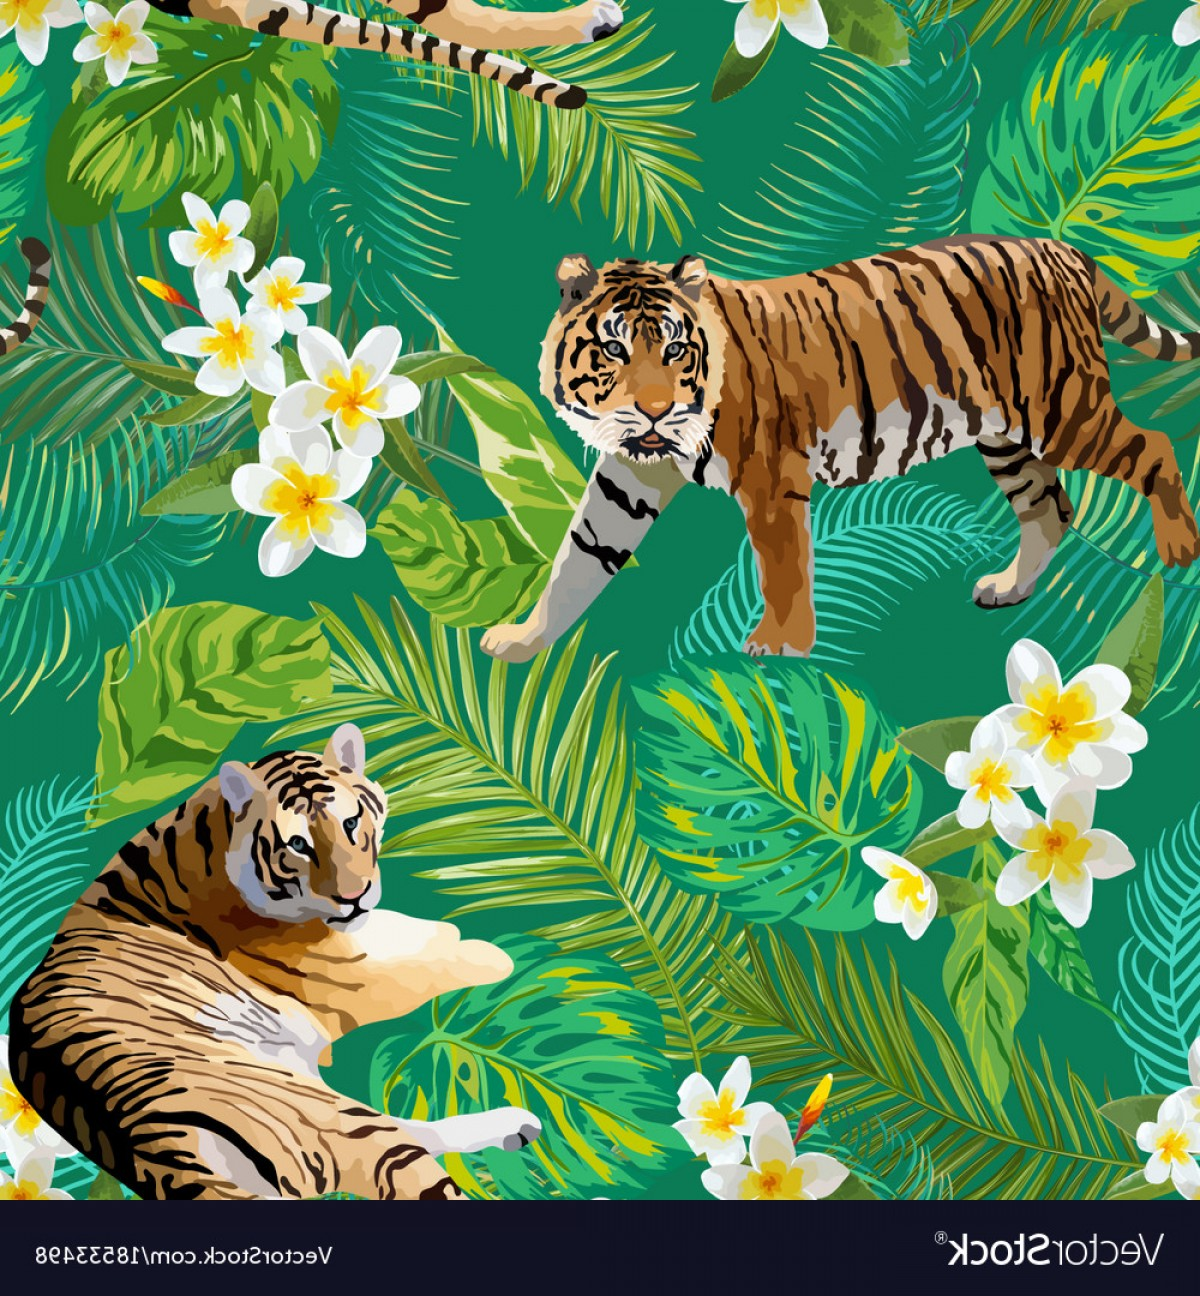 Green Tiger Vector: Tigers Flowers And Palm Leaves Background Vector